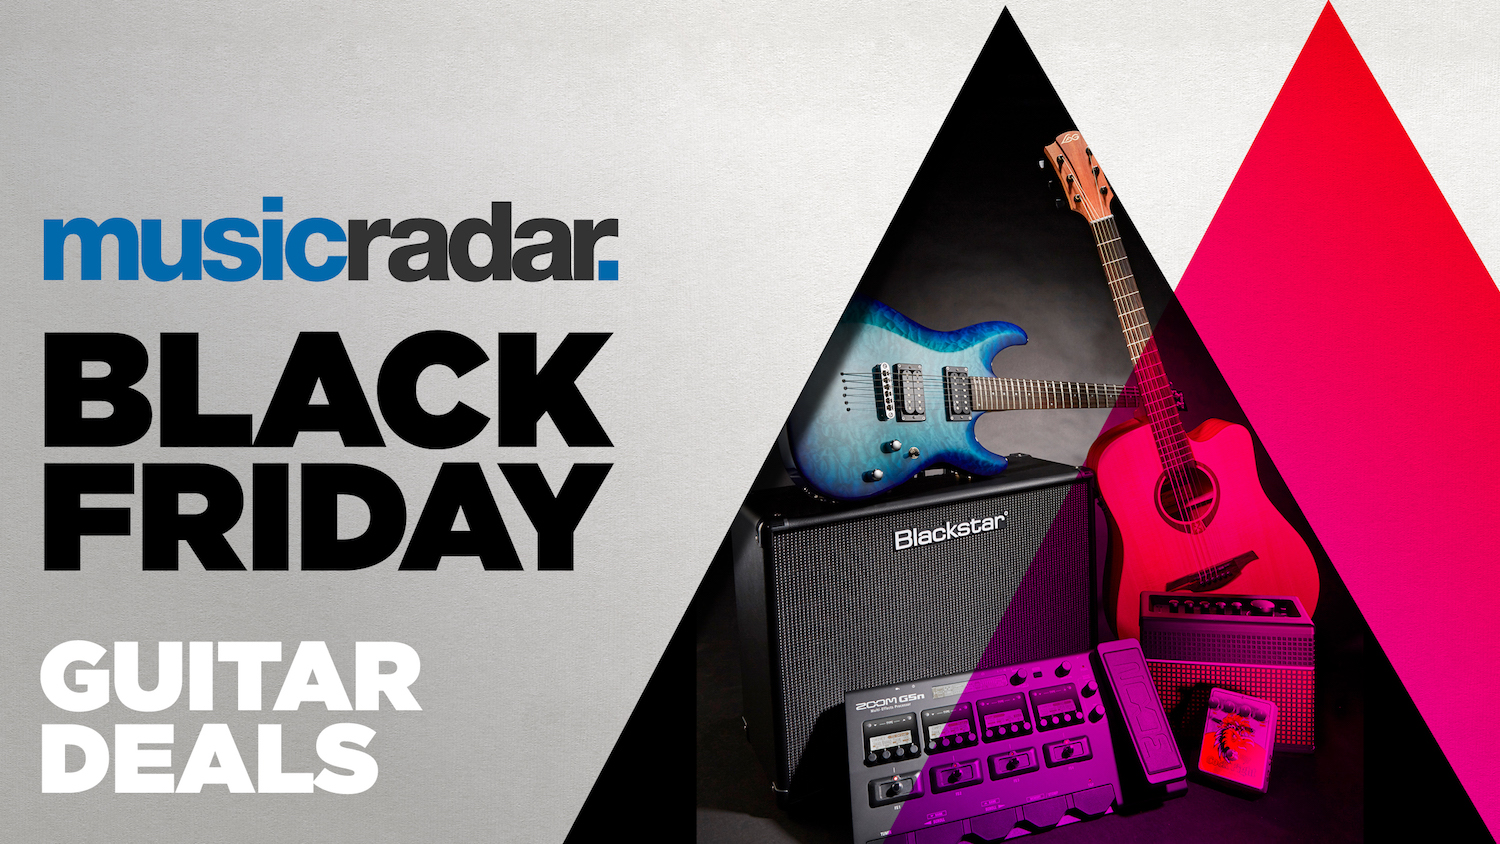 Black Friday Guitar Deals 2020 These Guitar Pedal Amp And Accessory Deals Are Still Live Musicradar